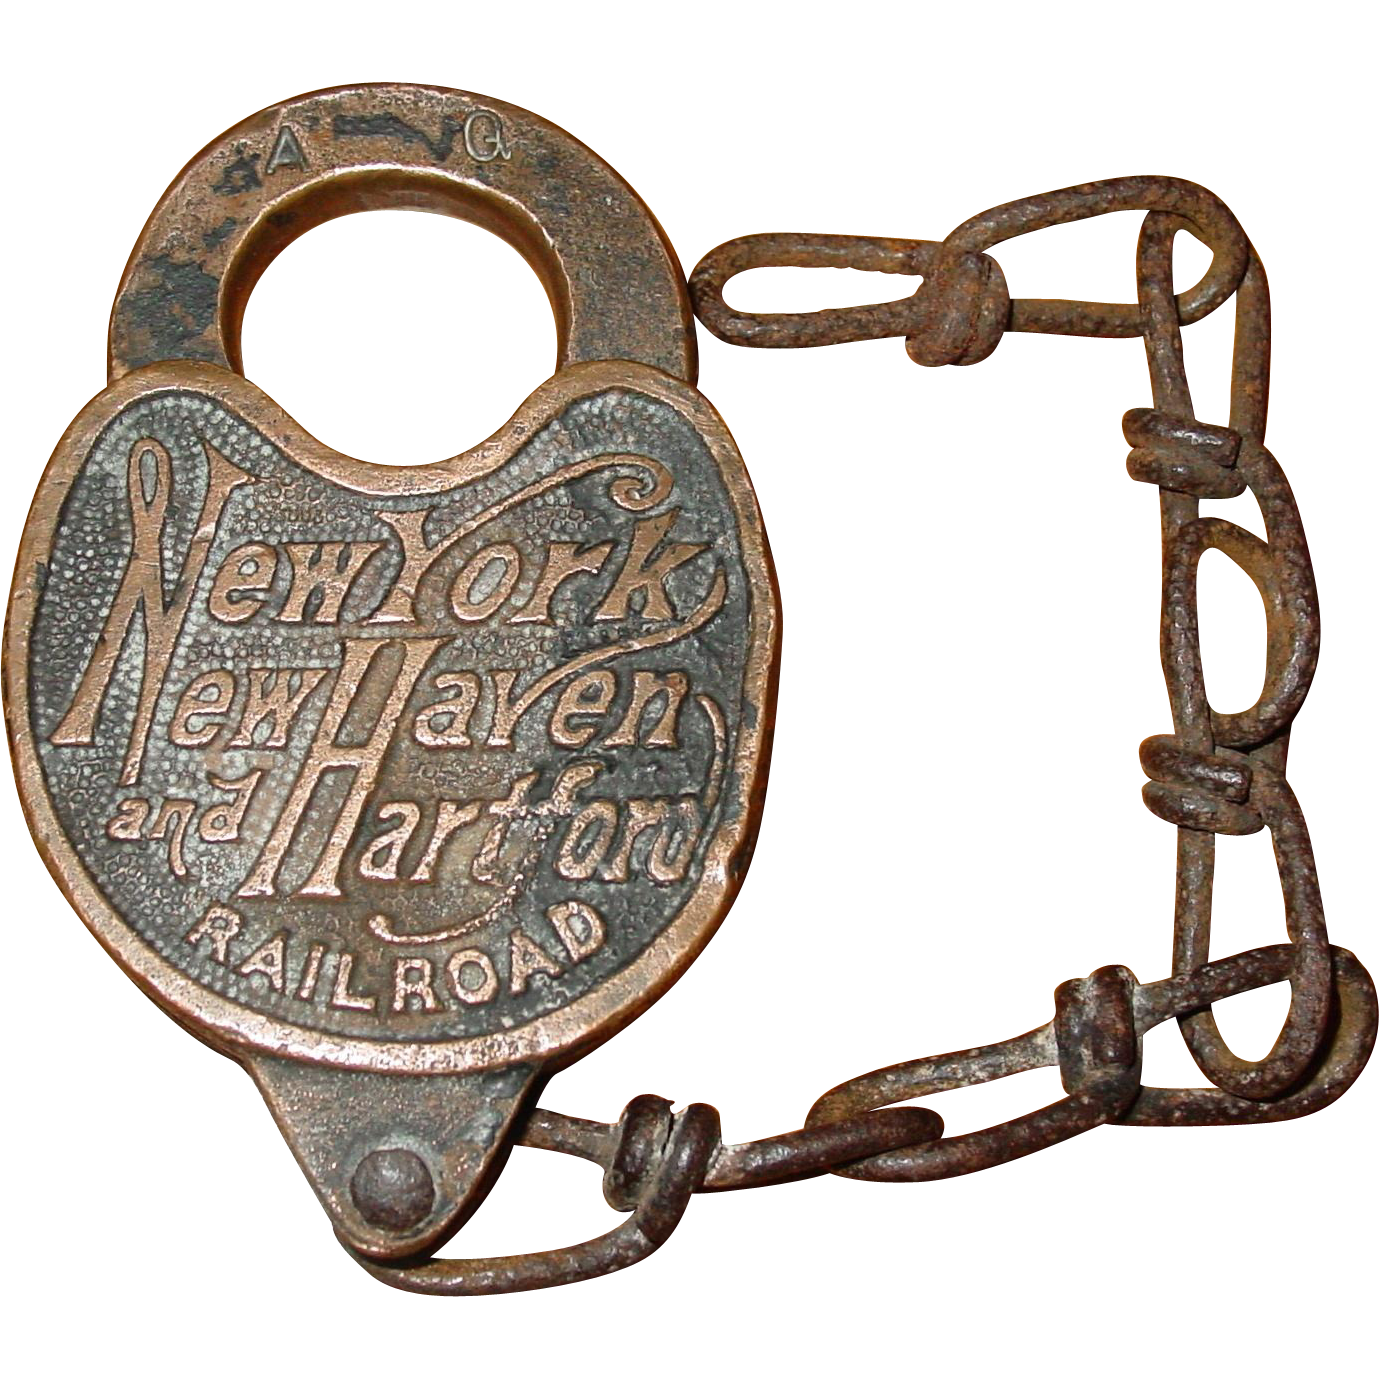 NY New Haven Hartford railroad padlock